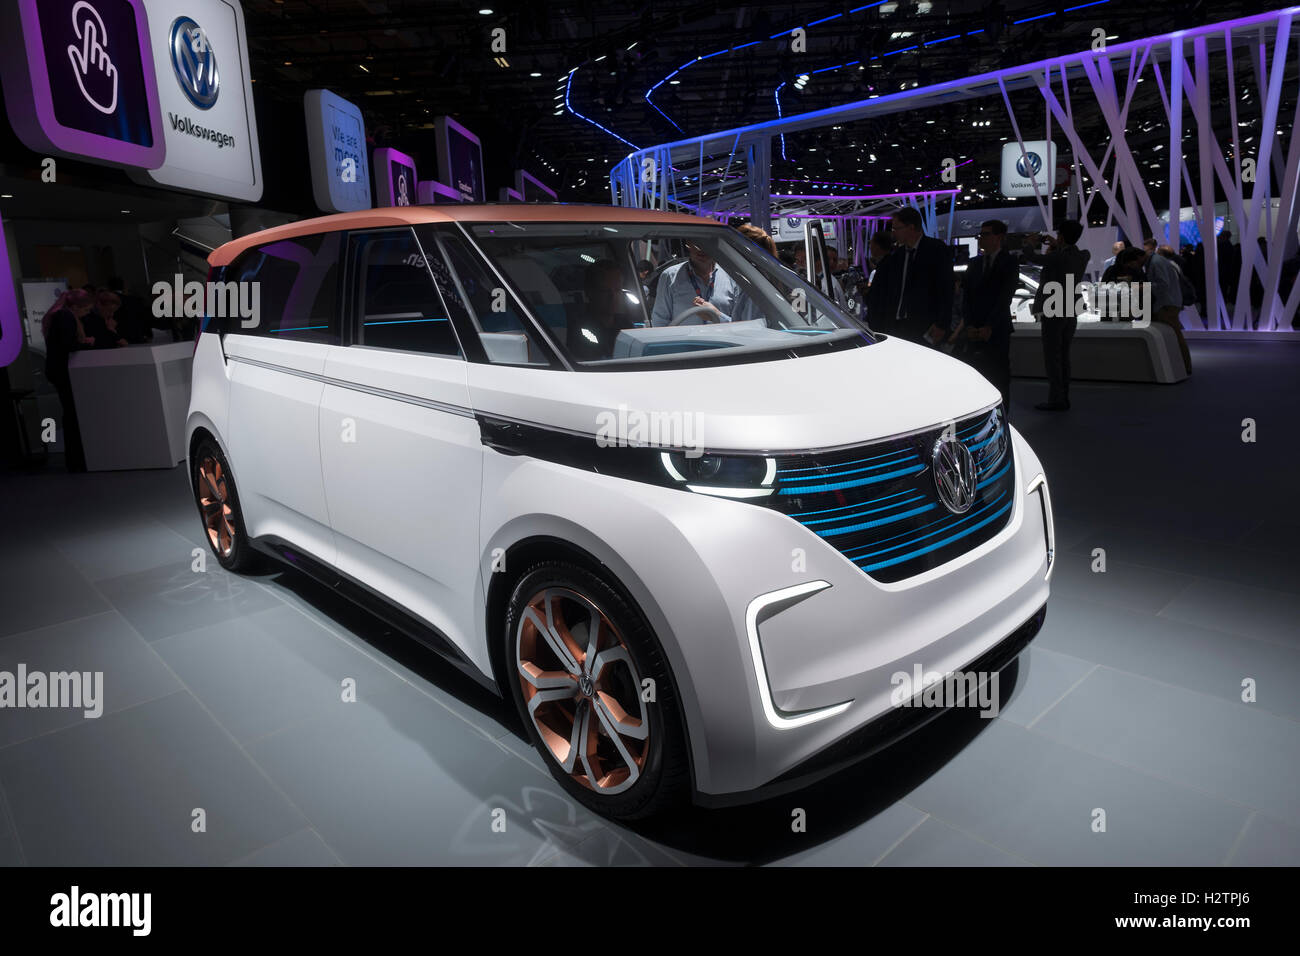 Volkswagen, VW Budd.E electric concept minivan  at Paris Motor Show 2016 - Stock Image